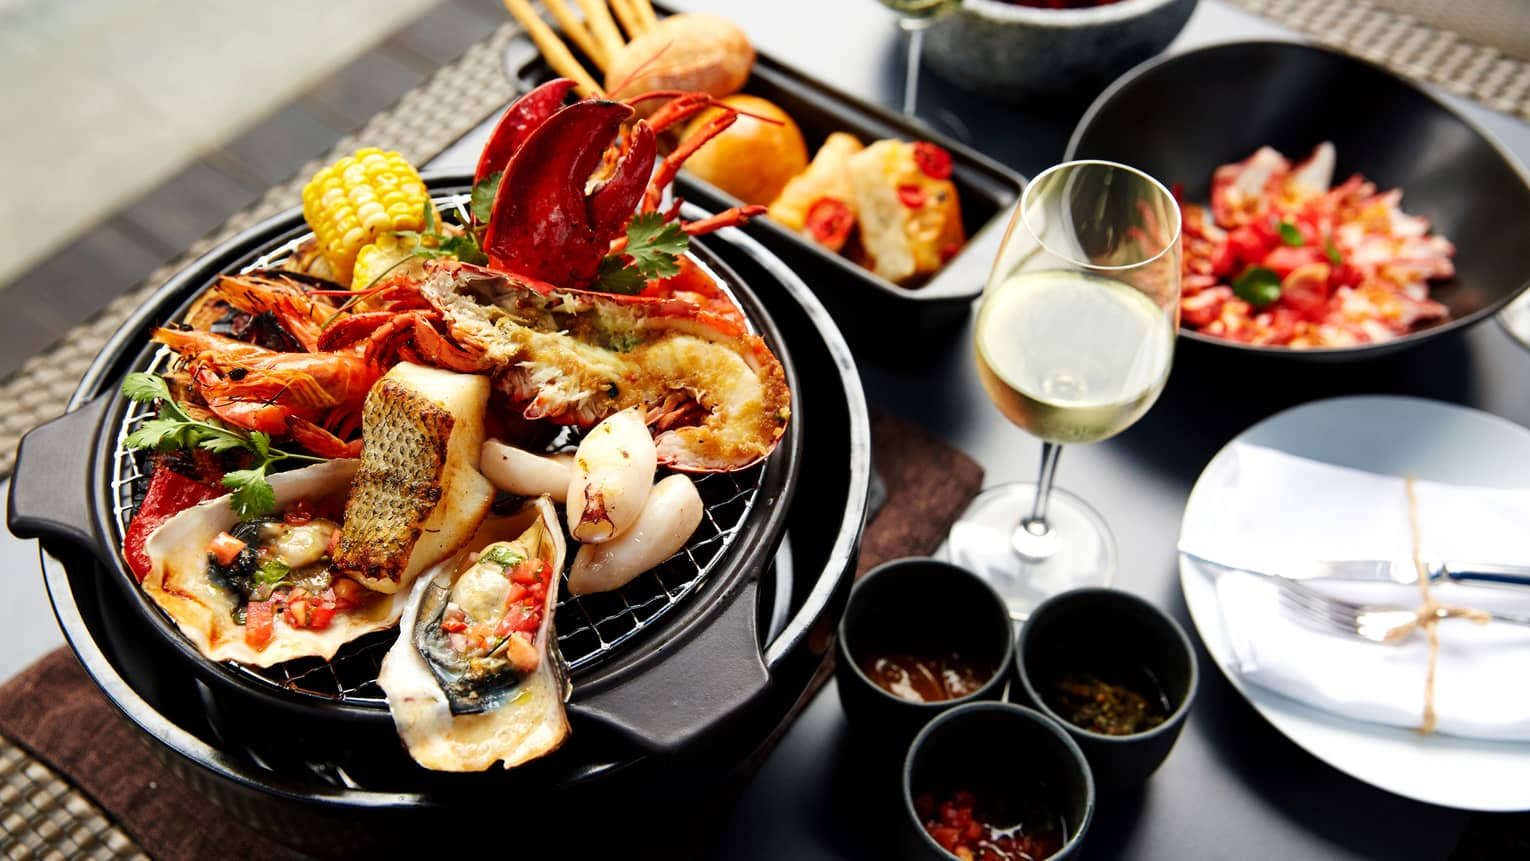 Grilled fish, oysters, lobster, crab on grill plate next to white wine, garnishes